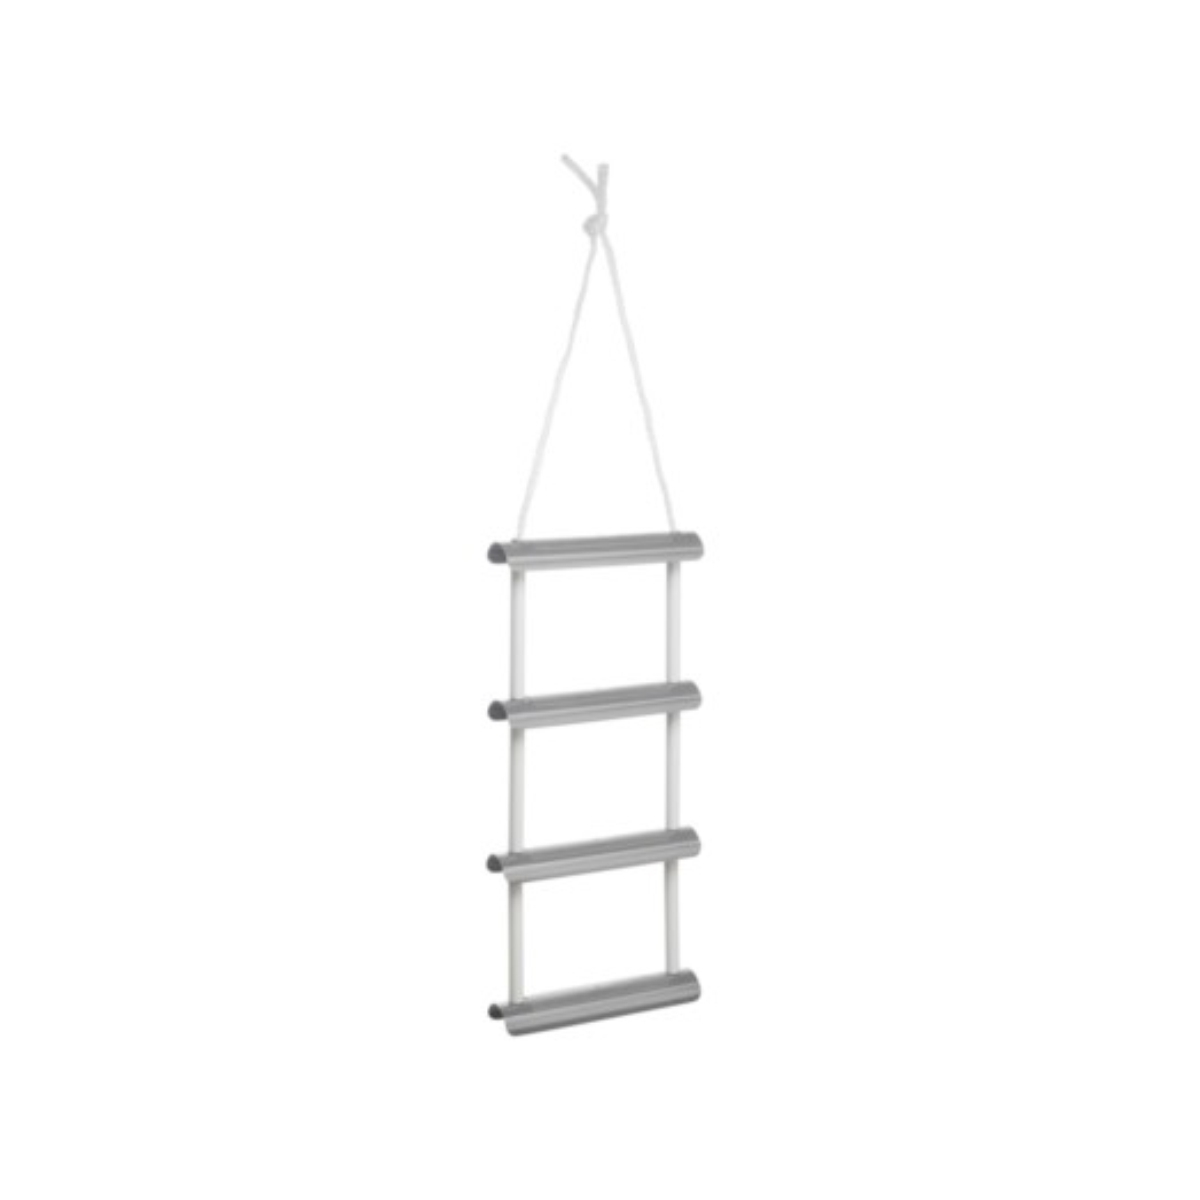 ROPE BOARDING LADDER, COLLAPSIBLE